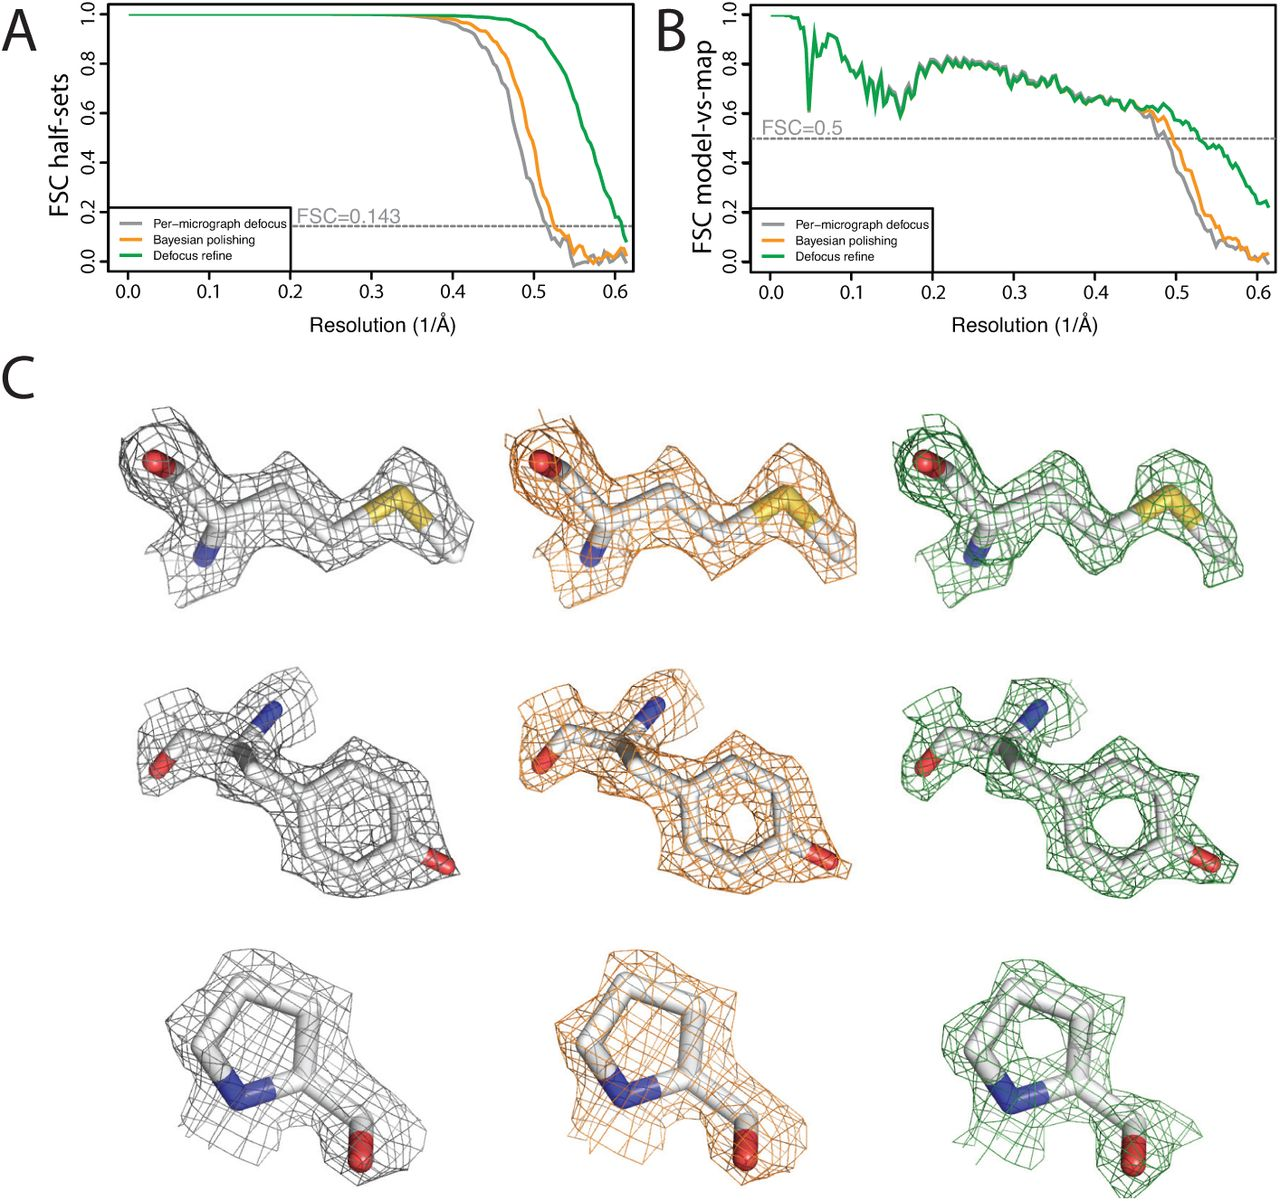 RELION-3: new tools for automated high-resolution cryo-EM